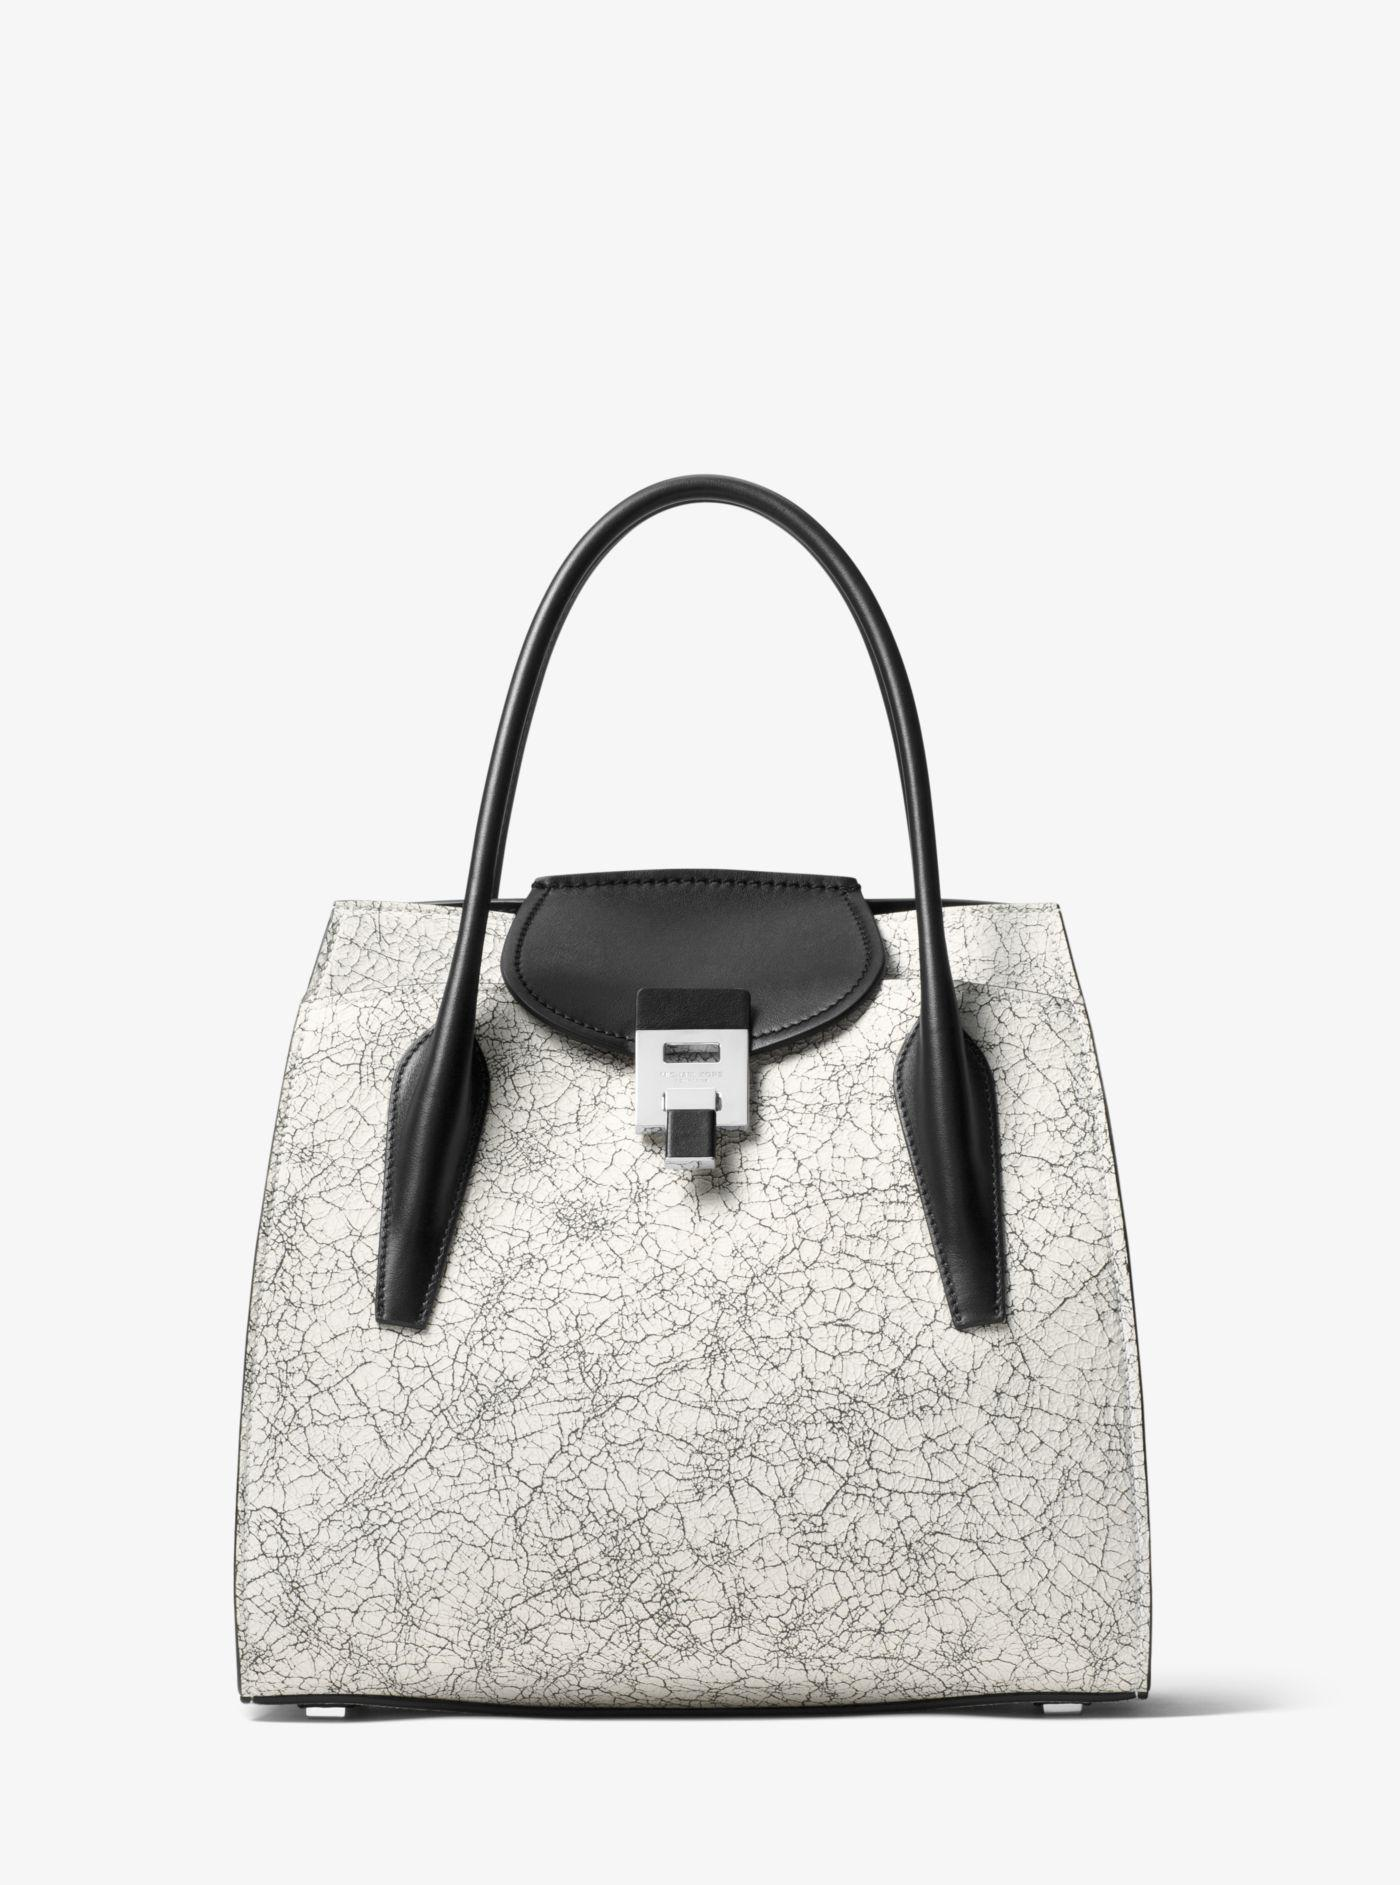 b39845b25642 Lyst - Michael Kors Bancroft Large Crackled Leather Tote in White